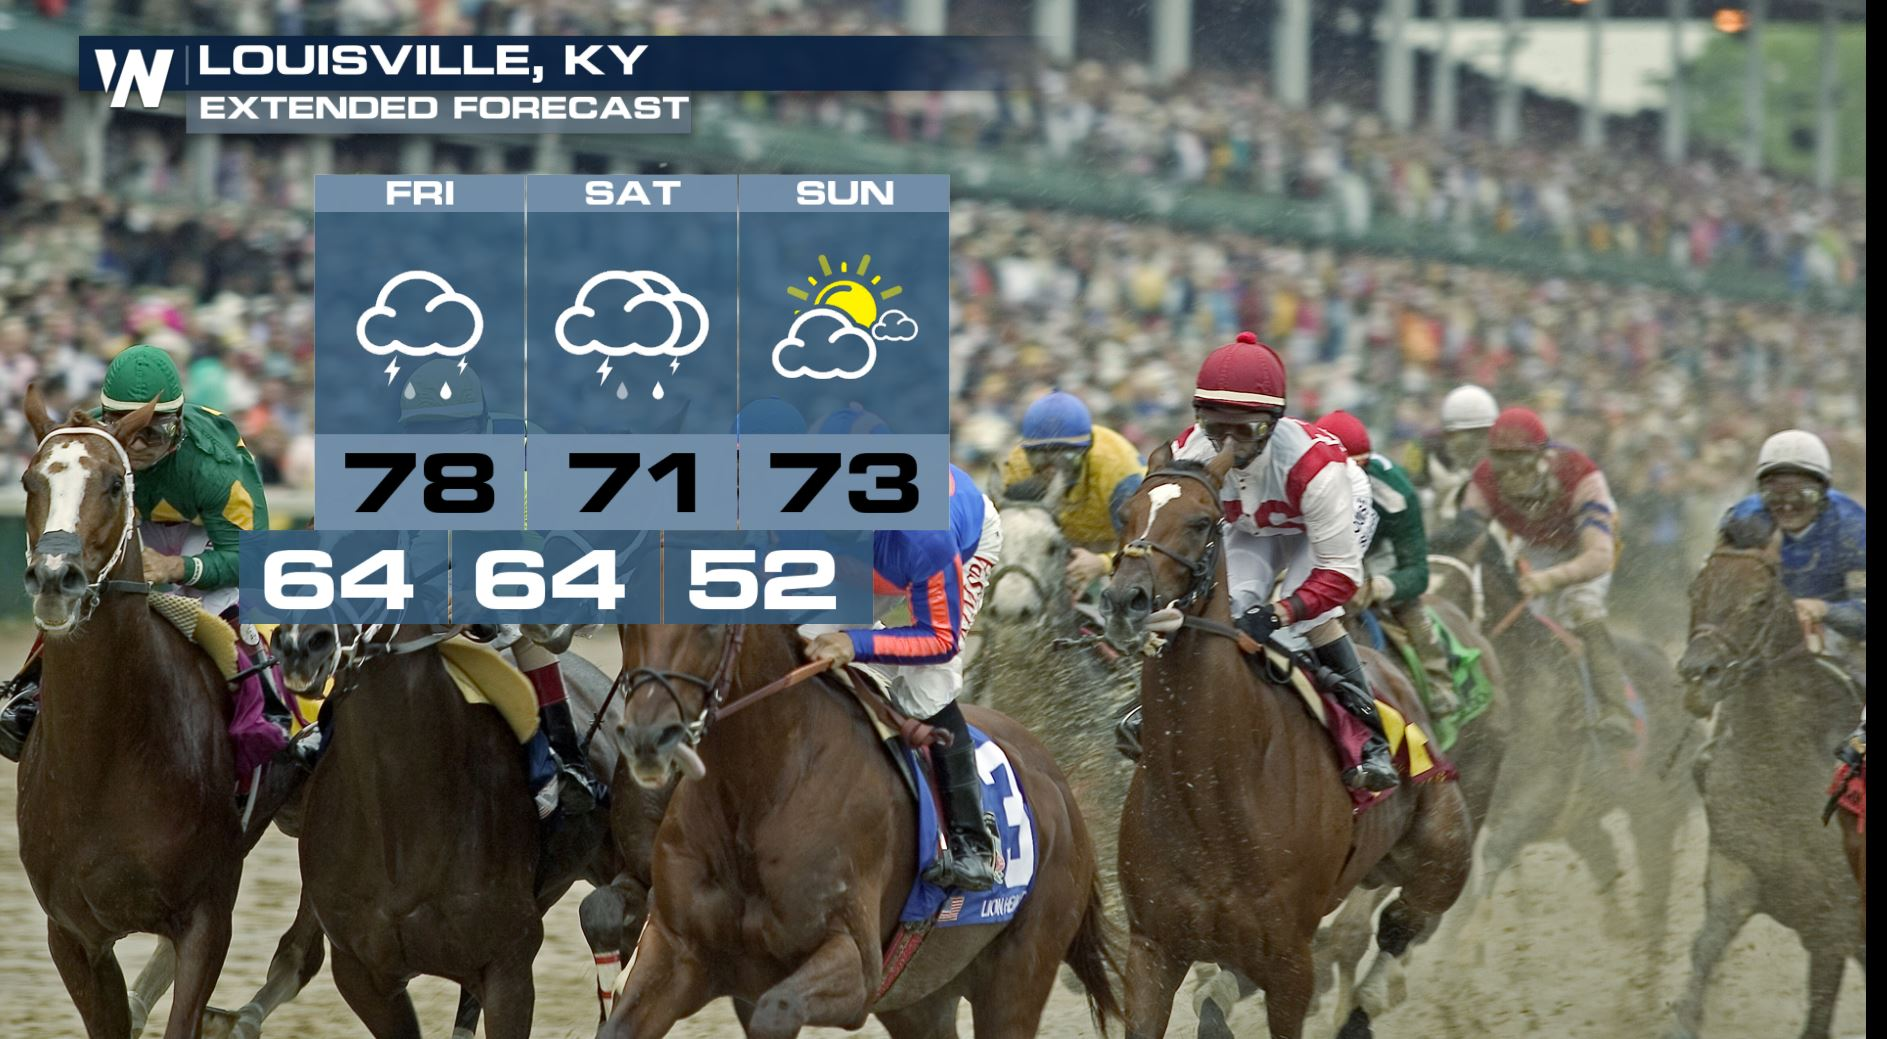 Odds In Favor Of A Muddy Kentucky Derby